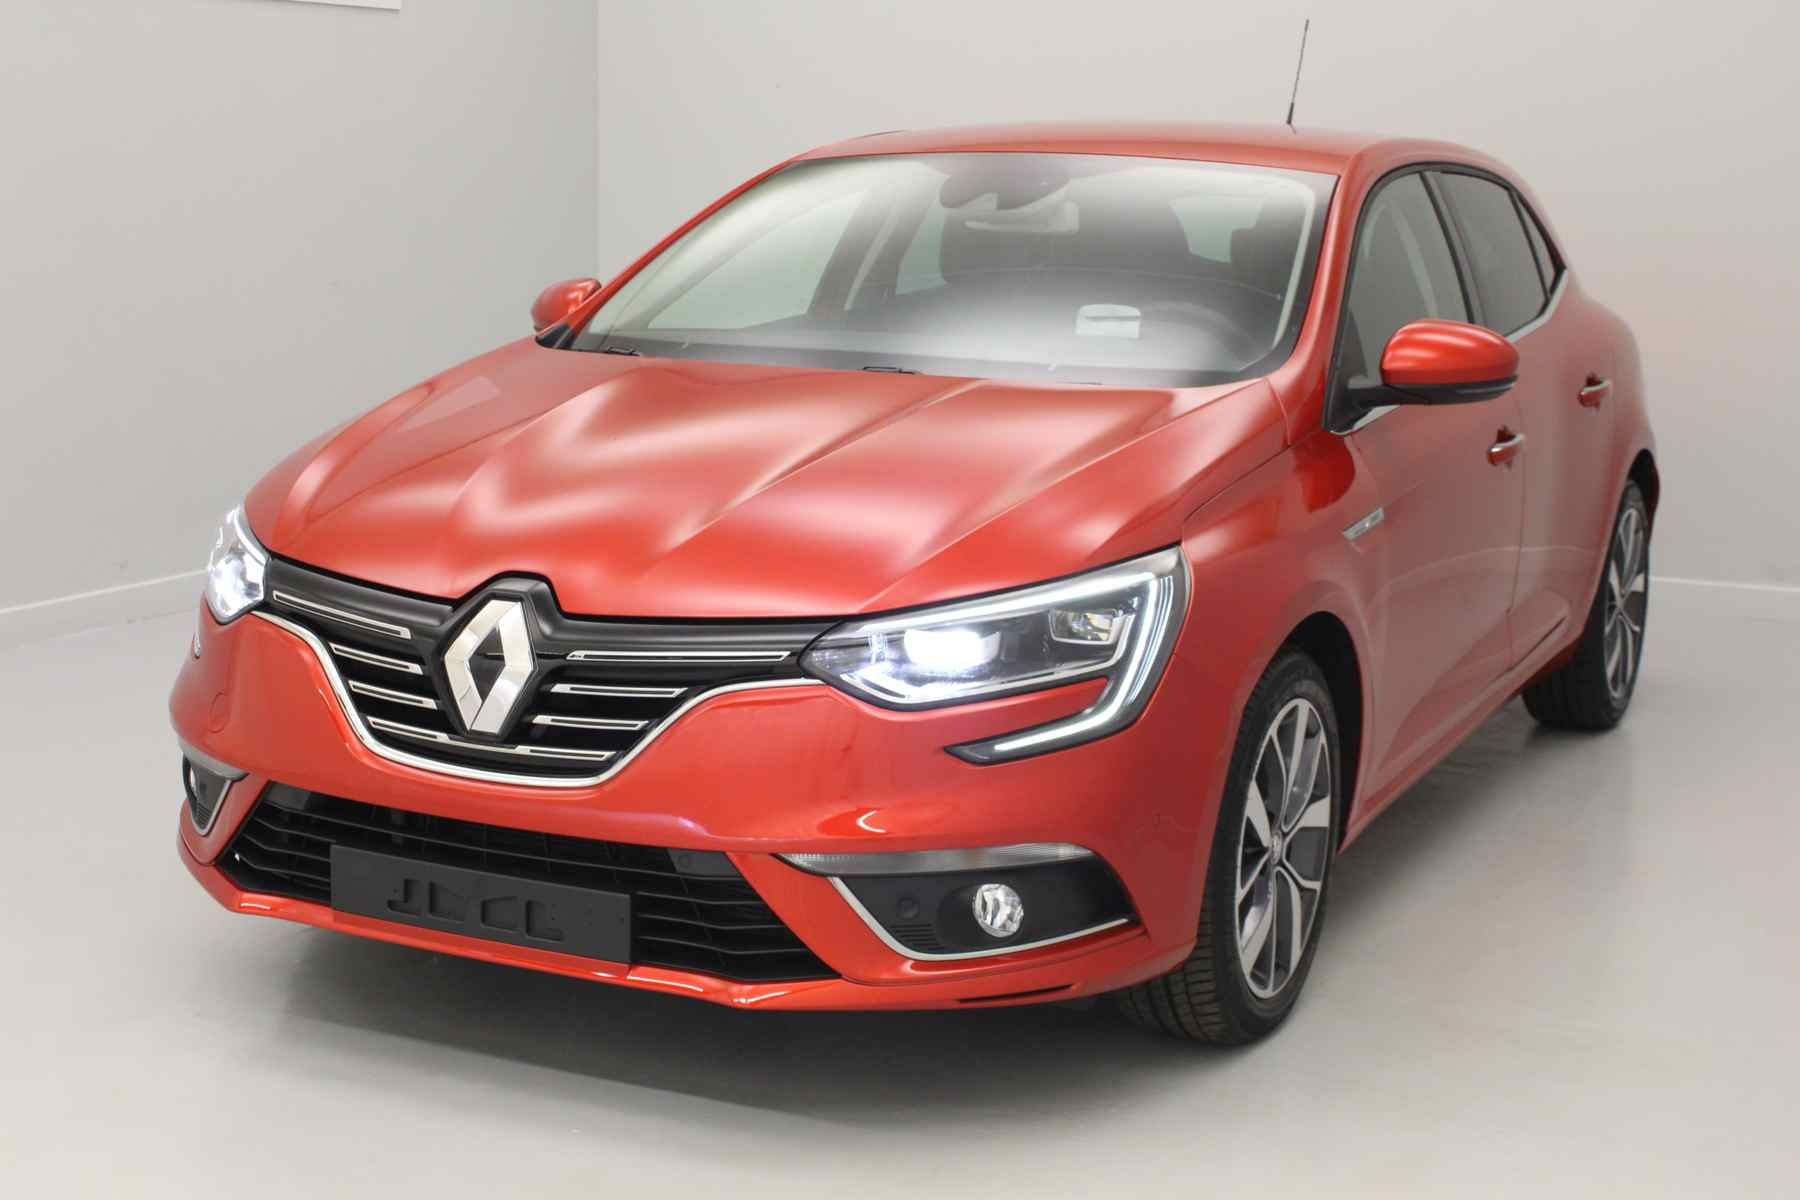 RENAULT Nouvelle Mégane IV Berline dCi 110 Energy Intens Rouge Flamme + Pack Easy Parking avec options